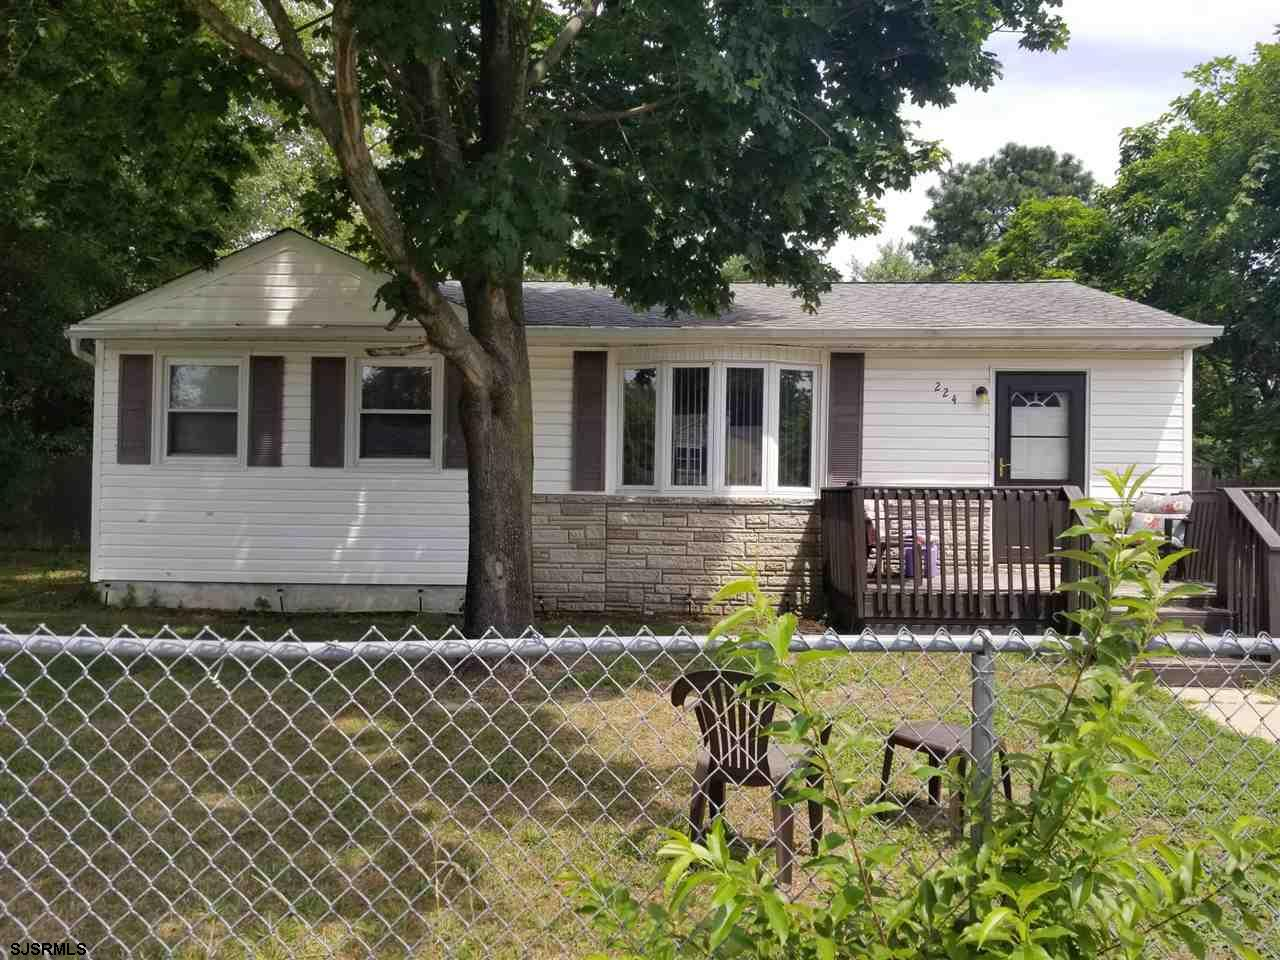 This is 3 Br and 1Ba with a convenient location makes this a great bargain. The home sits adjacent t